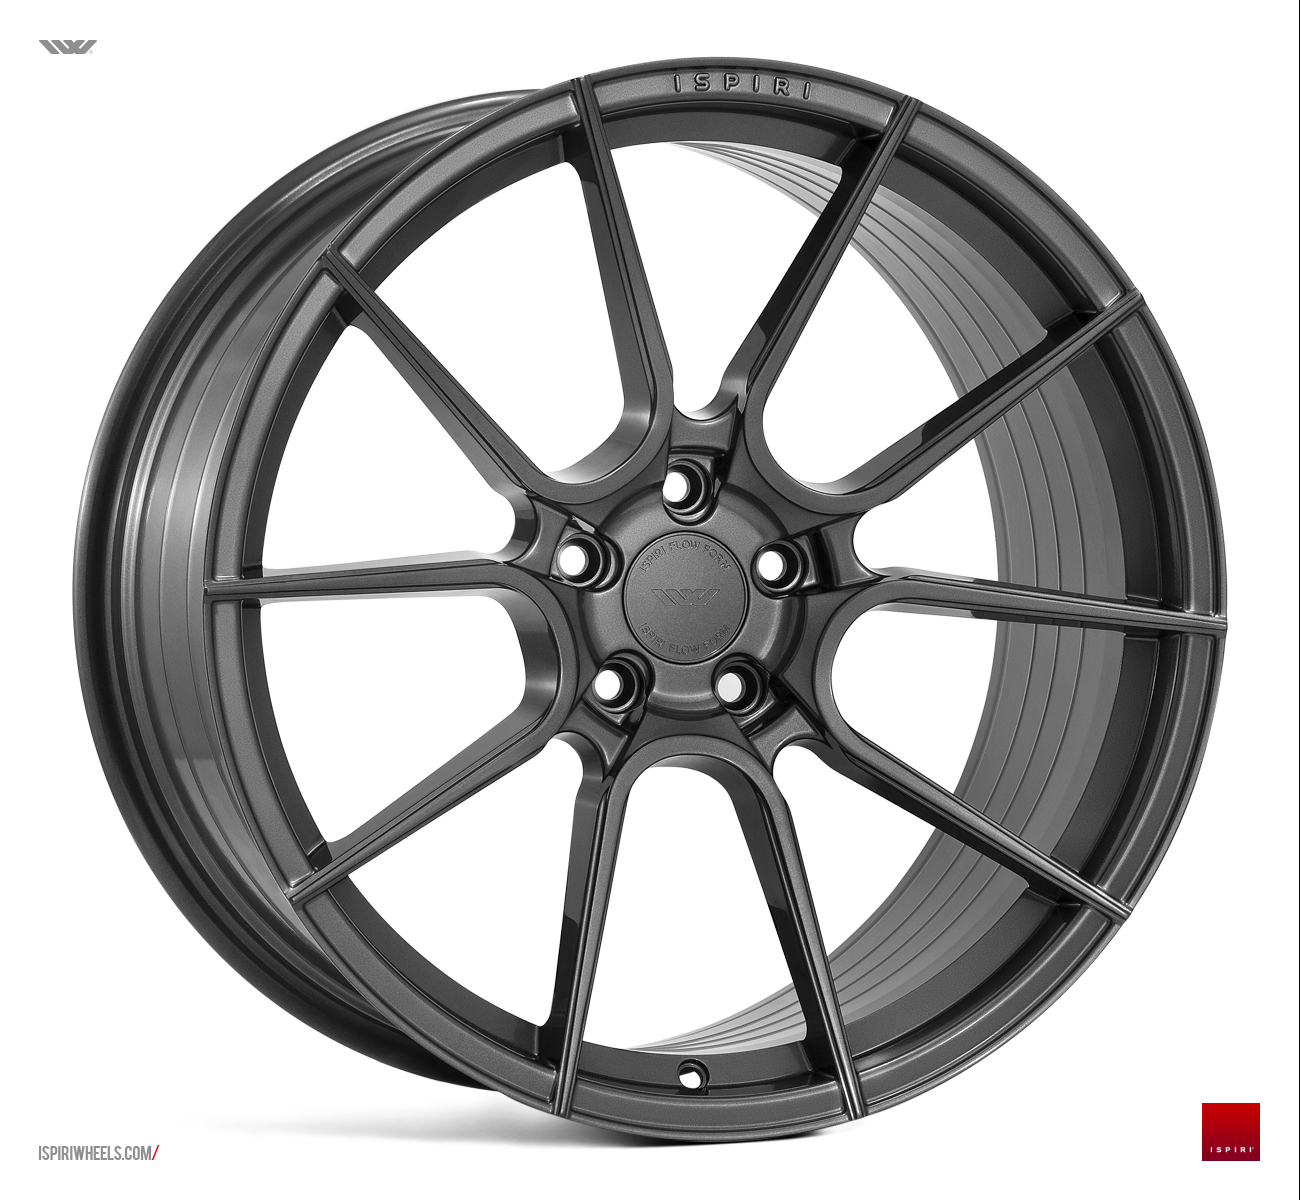 "NEW 20"" ISPIRI FFR6 TWIN 5 SPOKE ALLOY WHEELS IN CARBON GRAPHITE, WIDER 10"" OR 10.5"" REAR"